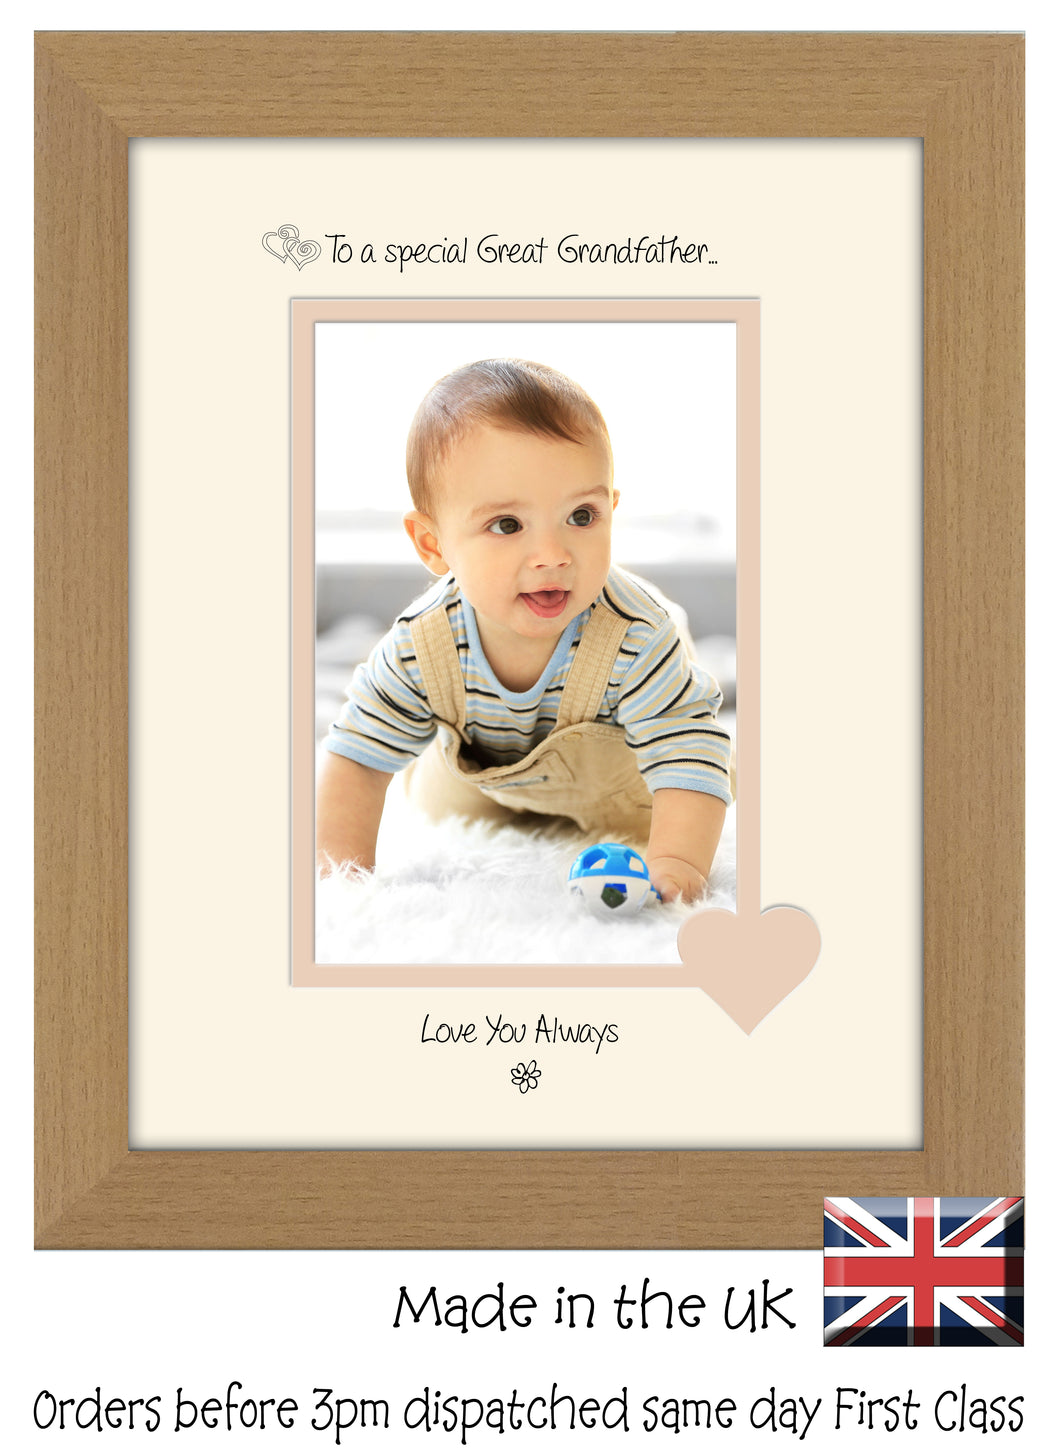 Great Grandfather Photo Frame - To a Special Great Grandfather ... Love you Always Portrait photo frame 6